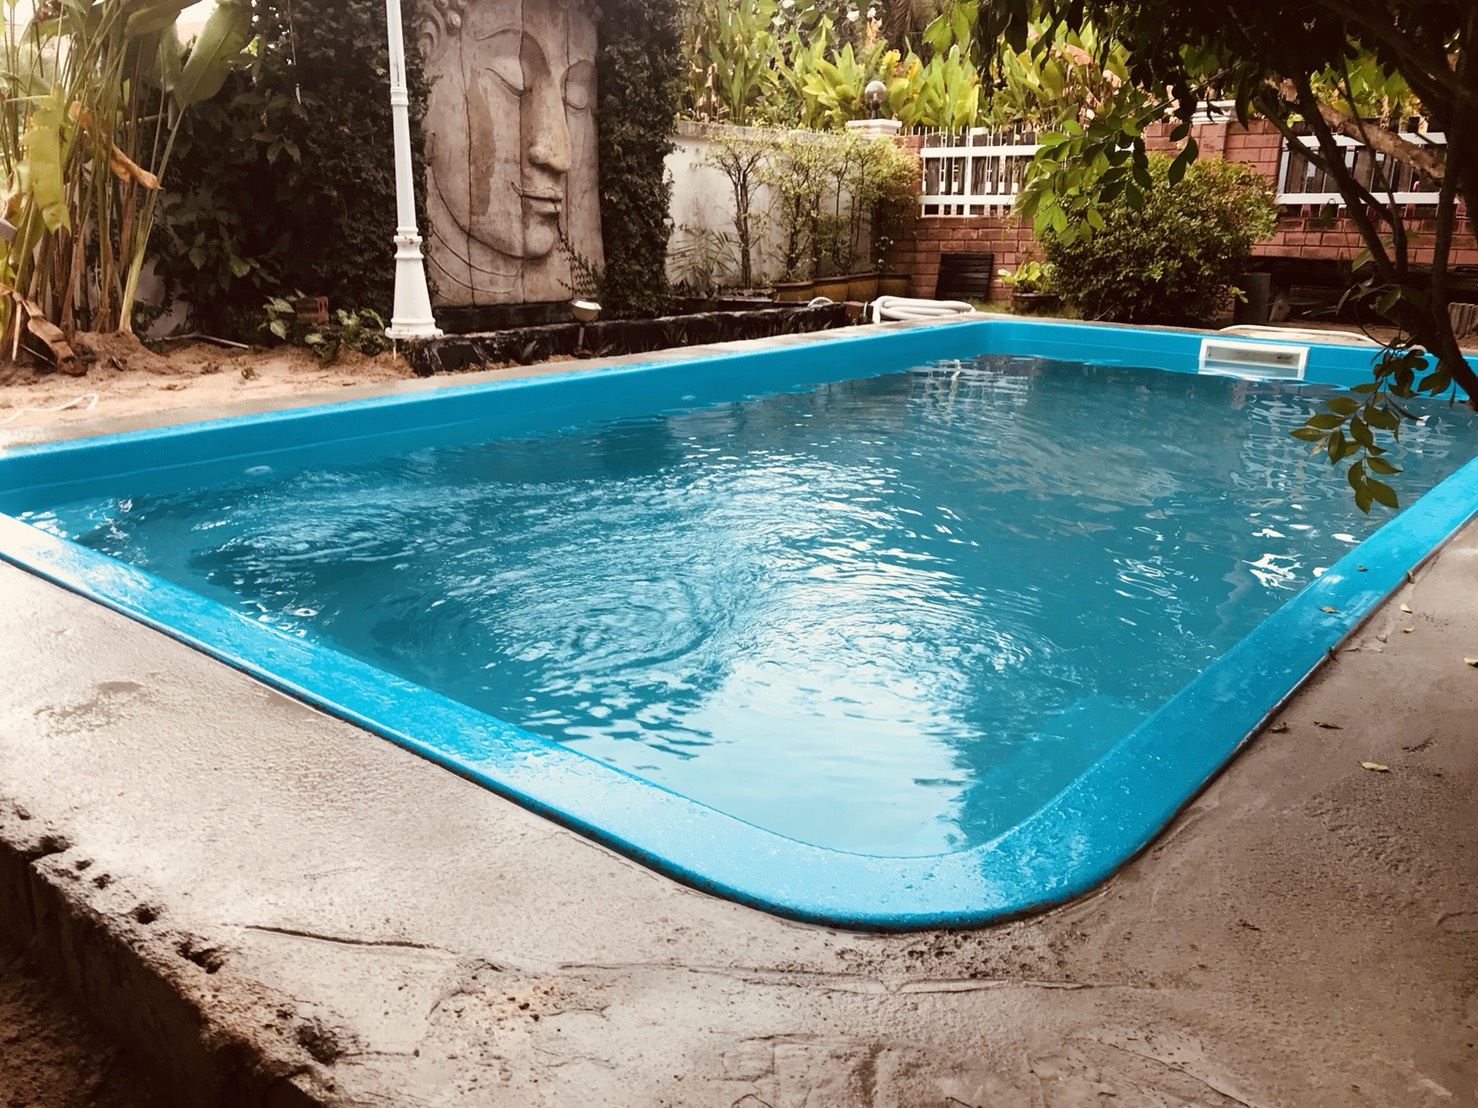 Pool world thailand issanswimming pool builders issan - Swimming pool builders ...